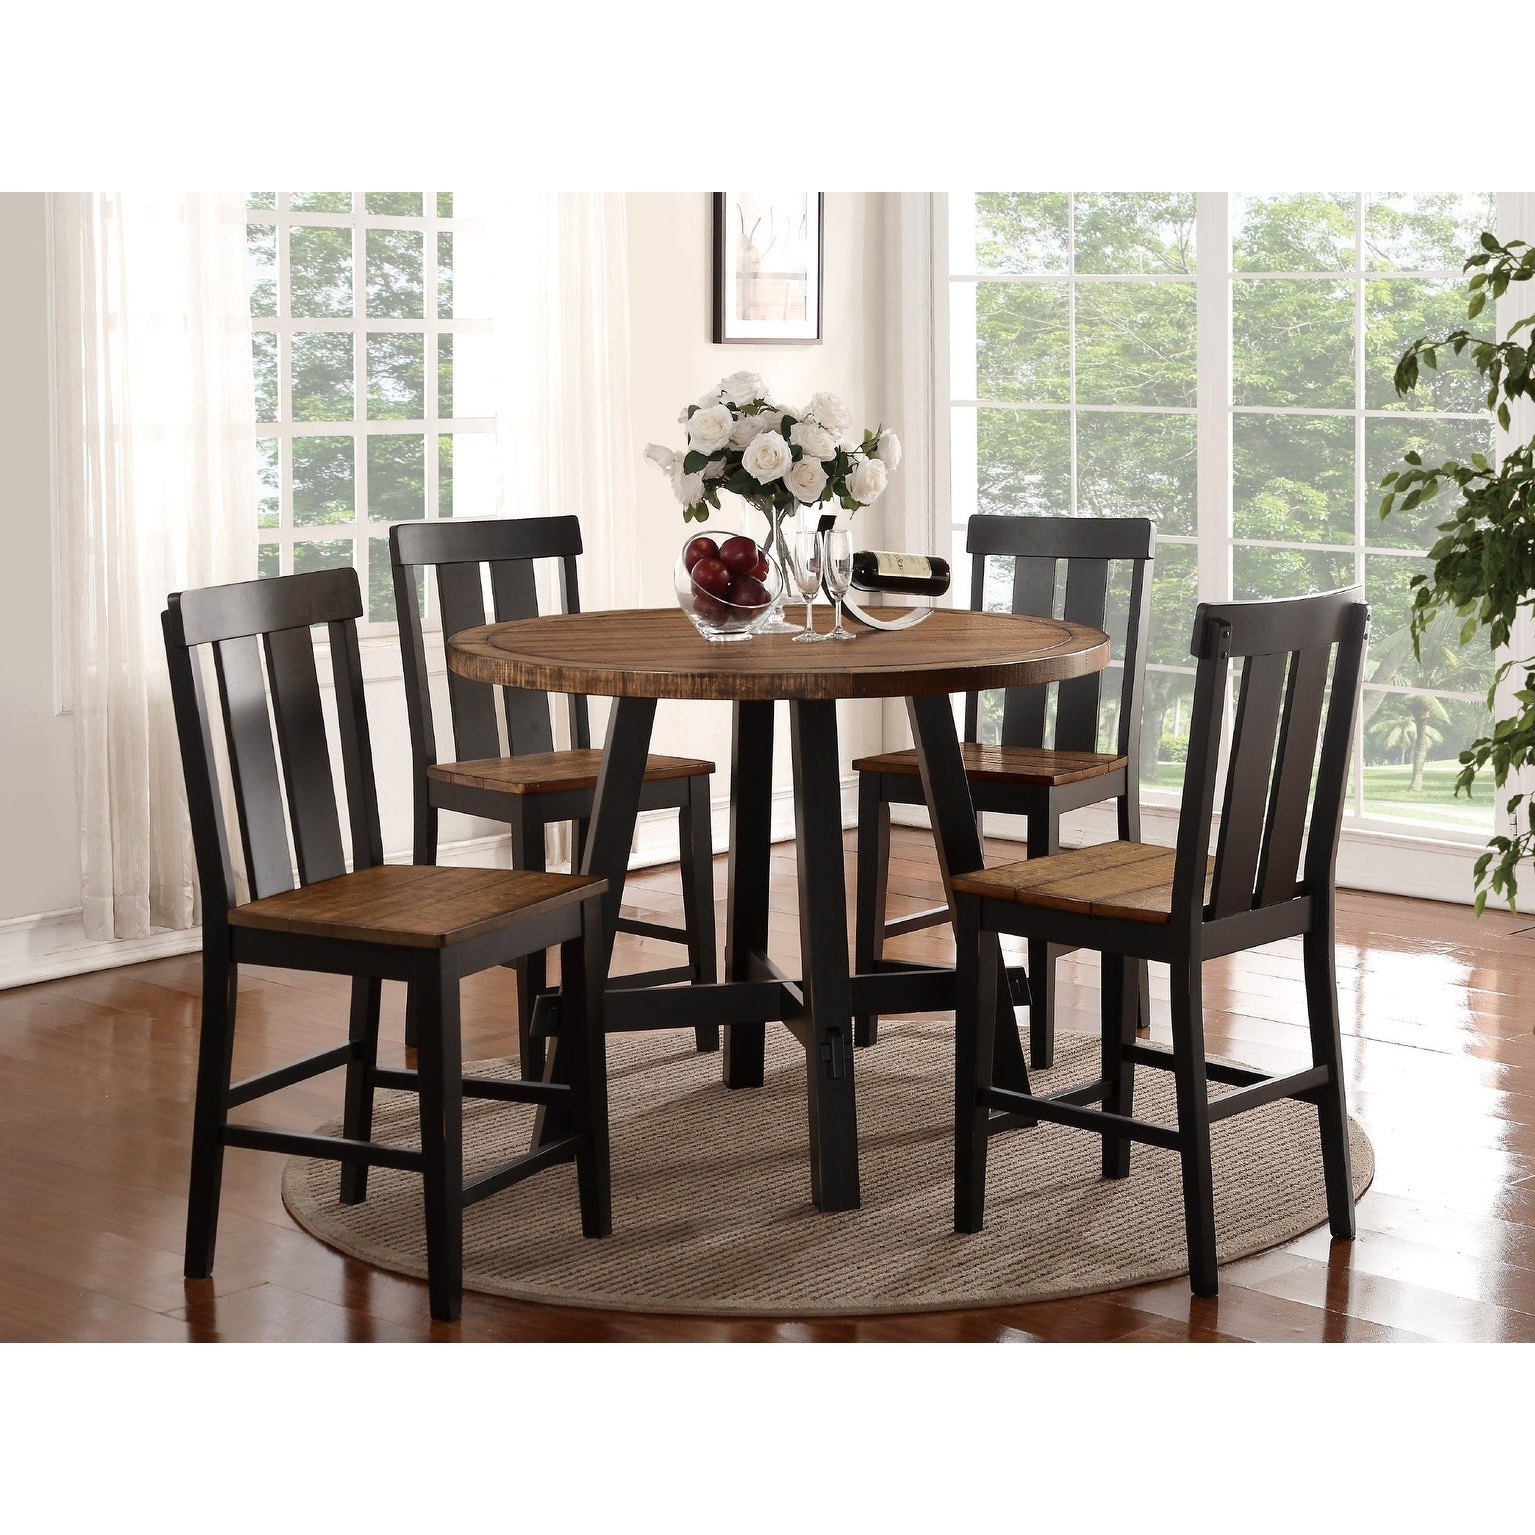 Well Liked Goodman 5 Piece Solid Wood Dining Sets (Set Of 5) With Shop Goodman 5 Piece Counter Height Dining Set – Free Shipping Today (View 2 of 25)